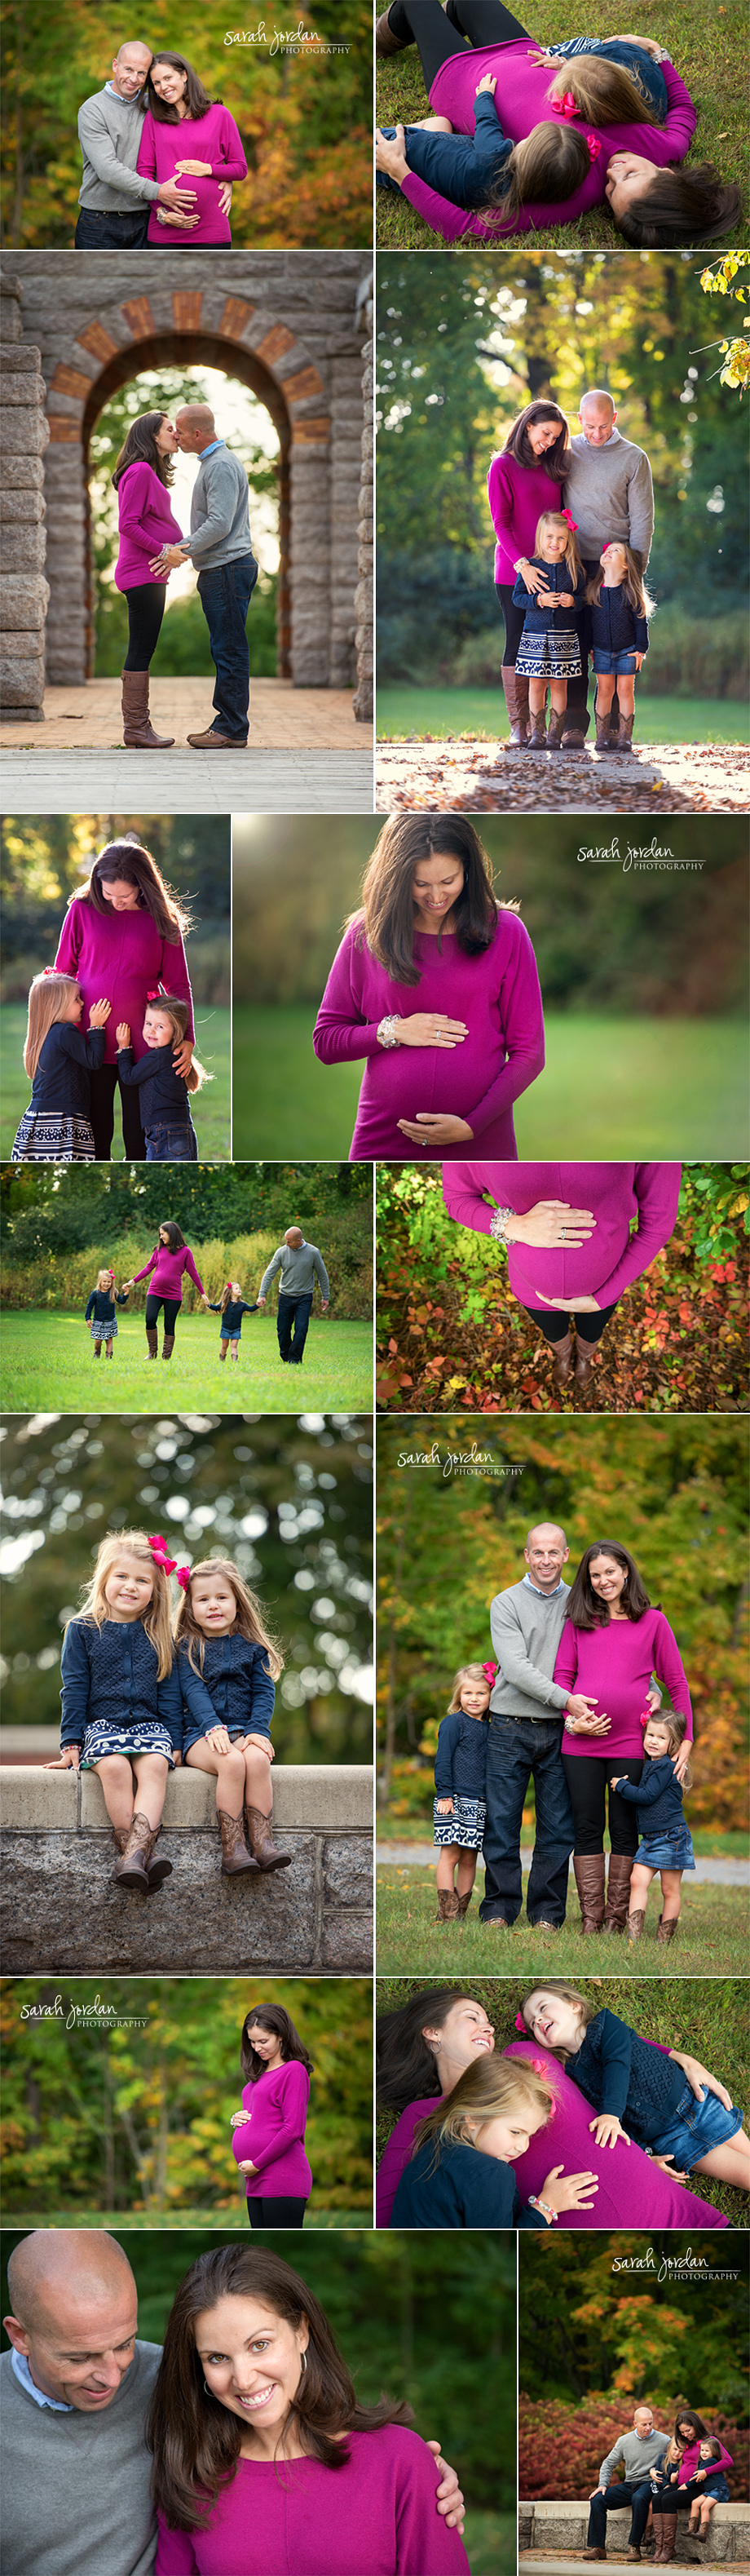 Methuen maternity photographer